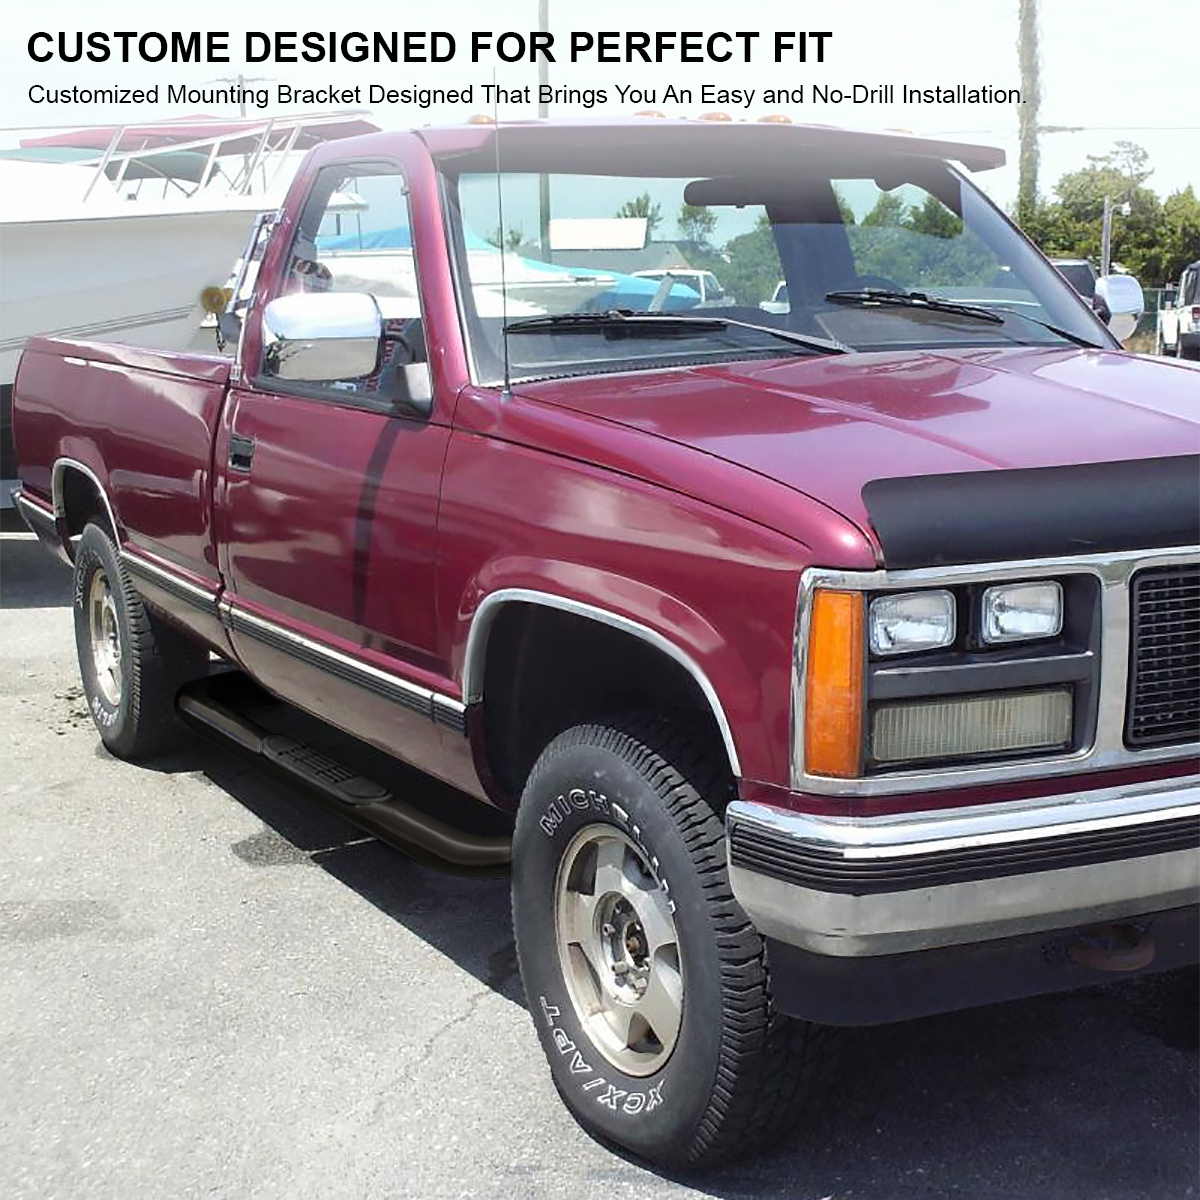 88 98 chevy gmc c k regular cab 2dr black running boards side step GMC Sierra 1500 16 Wheeles 88 98 chevy gmc c k regular cab 2dr black running boards side step nerf bars 684758619730 ebay